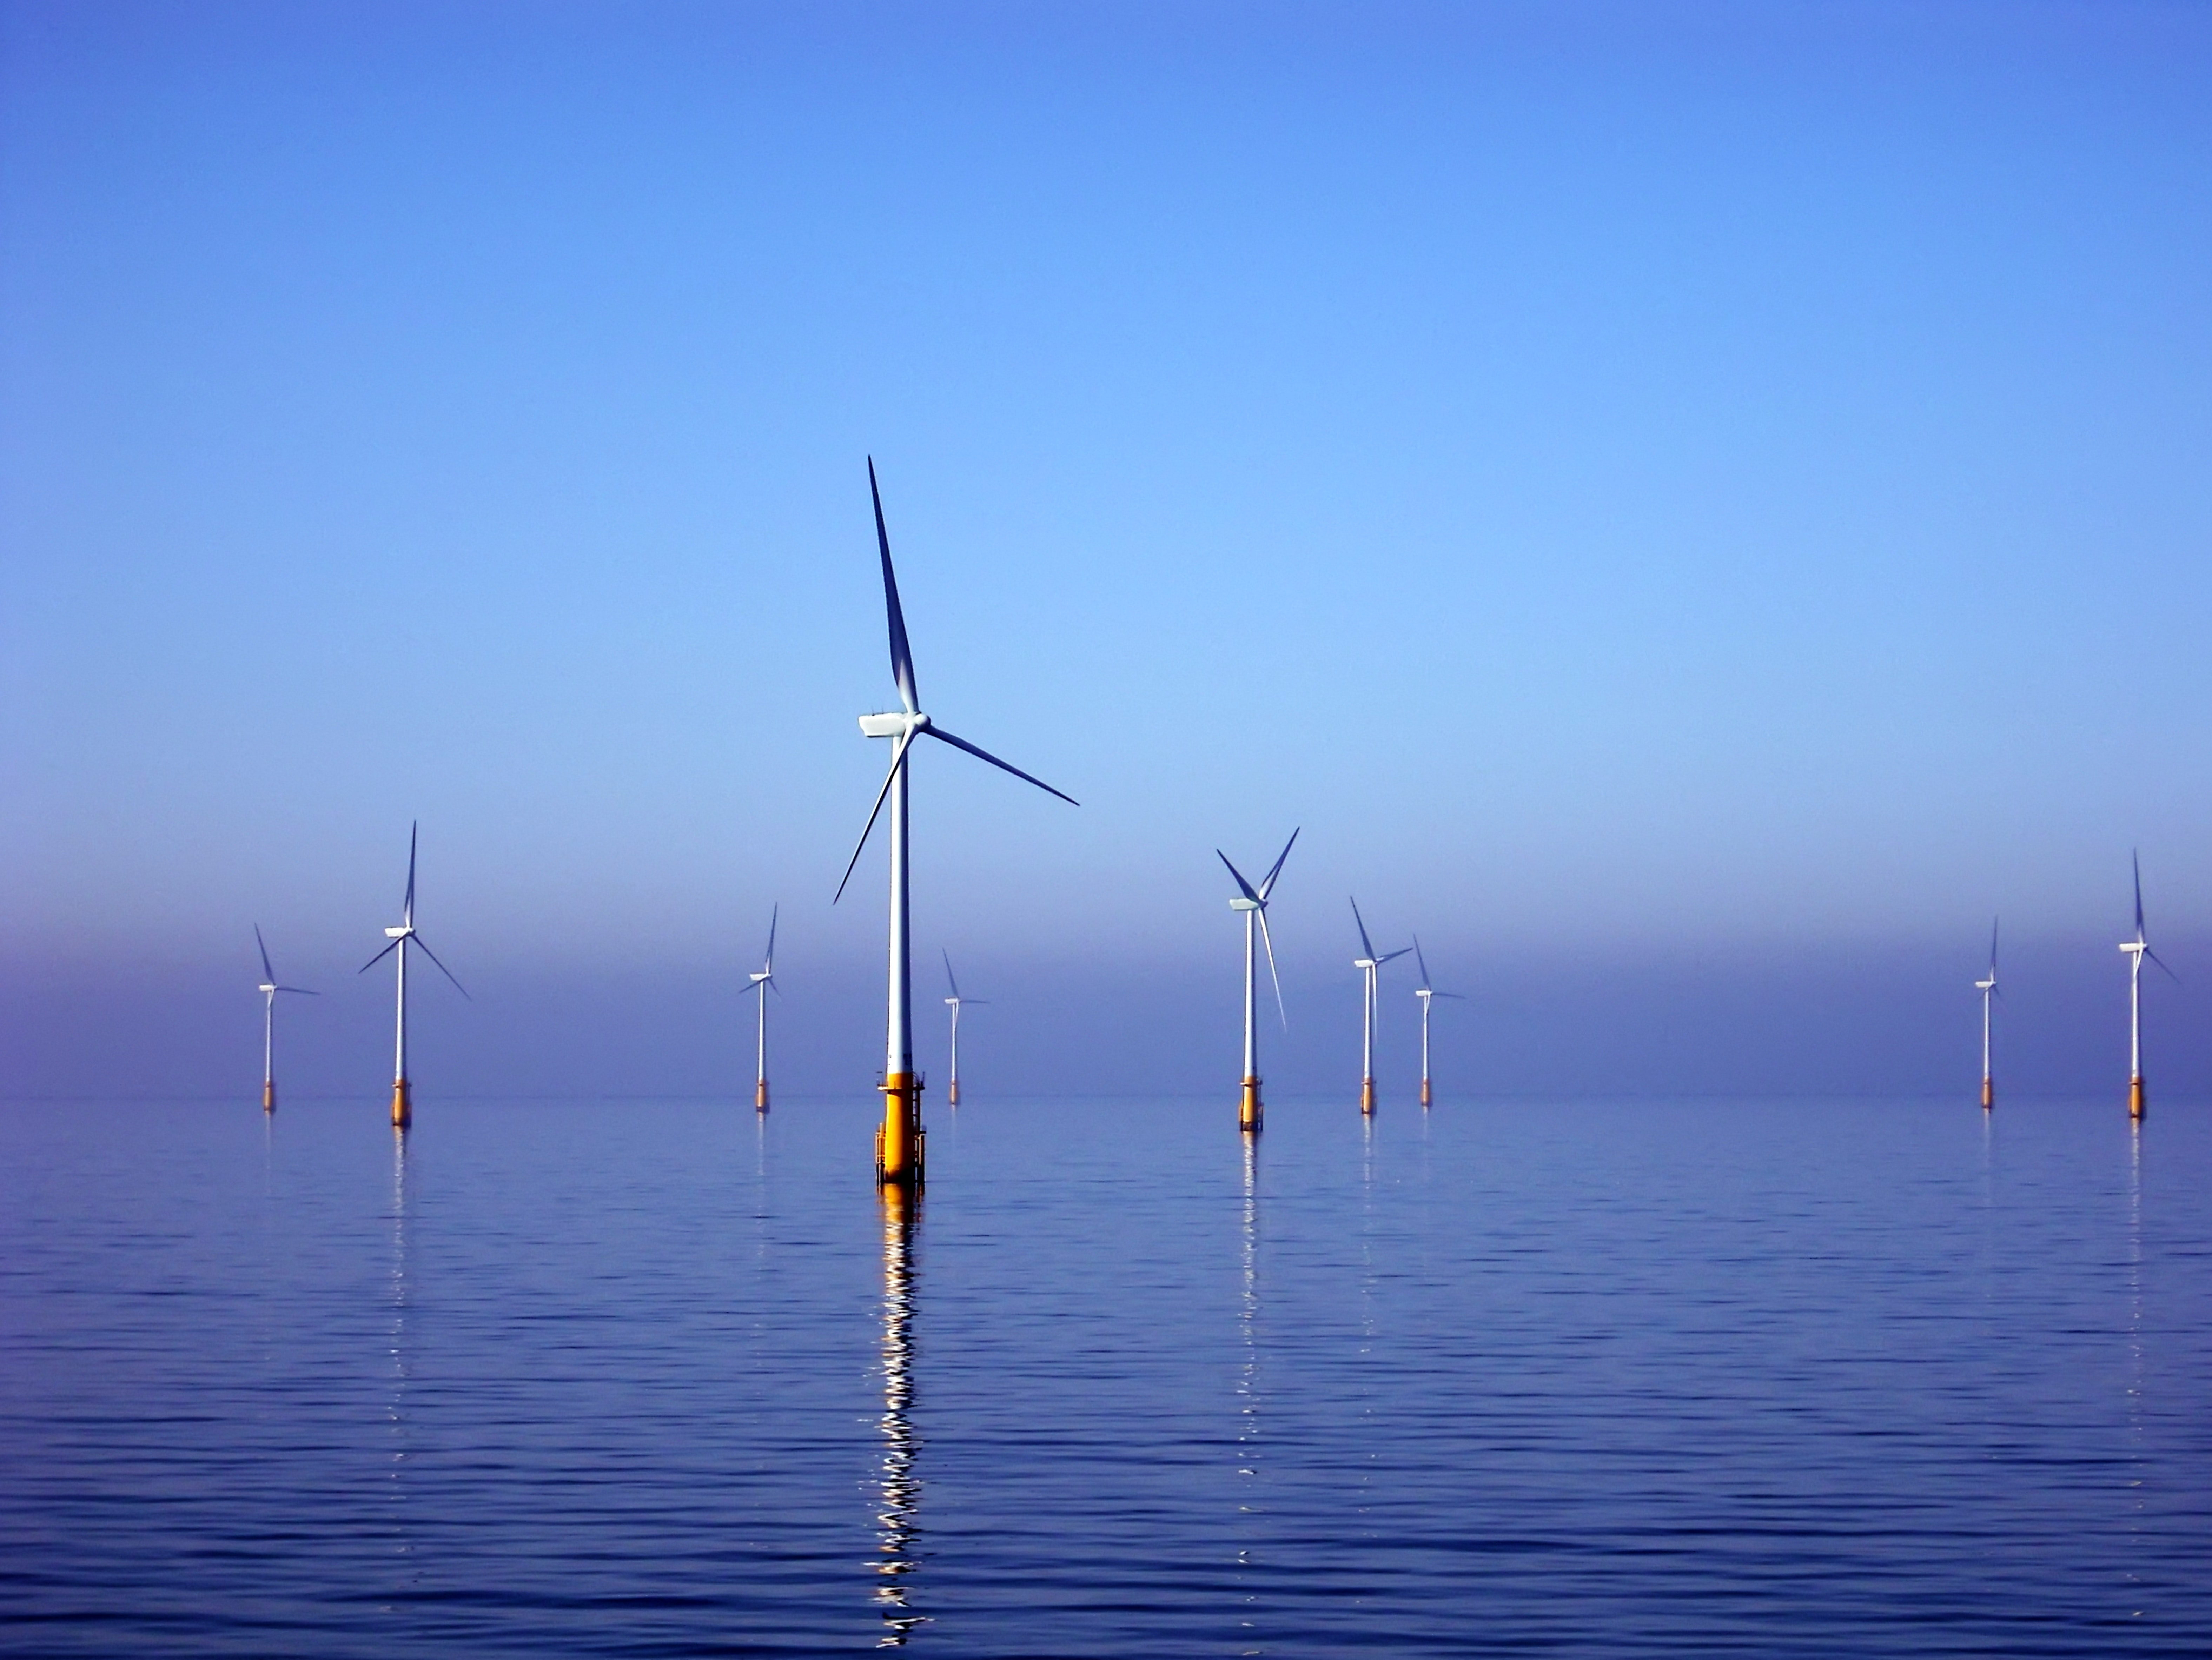 America's First Offshore Wind Farm Nears Completion